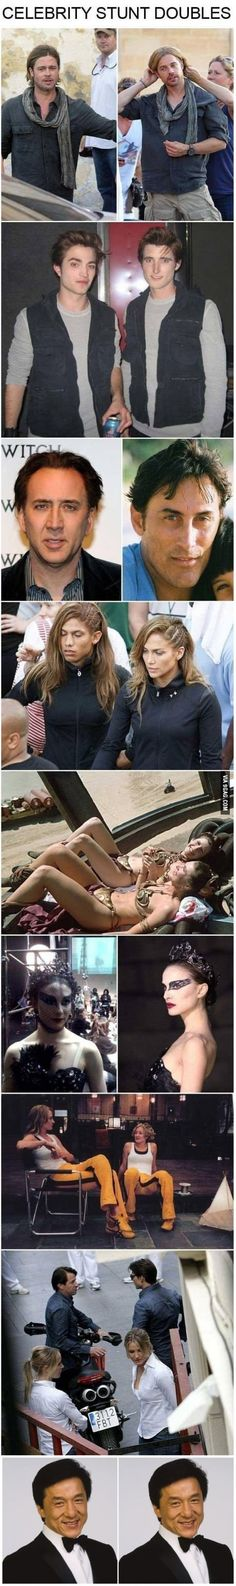 Celebrity Stunt Doubles #celebrities #movie